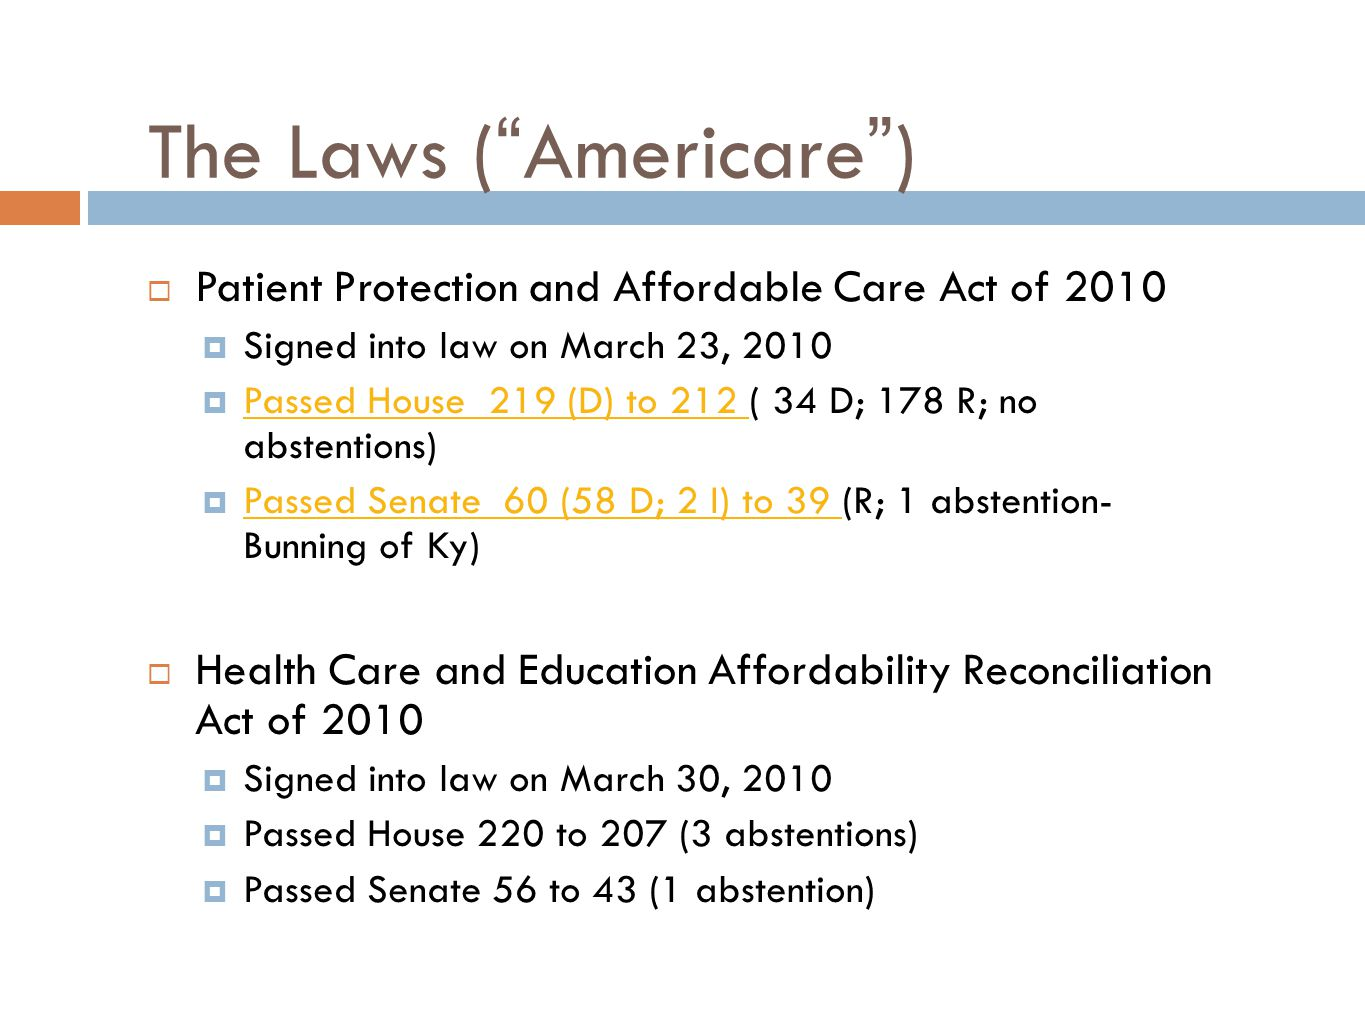 The Laws (Americare) Patient Protection and Affordable Care Act of 2010 Signed into law on March 23, 2010 Passed House 219 (D) to 212 ( 34 D; 178 R; no abstentions) Passed House 219 (D) to 212 Passed Senate 60 (58 D; 2 I) to 39 (R; 1 abstention- Bunning of Ky) Passed Senate 60 (58 D; 2 I) to 39 Health Care and Education Affordability Reconciliation Act of 2010 Signed into law on March 30, 2010 Passed House 220 to 207 (3 abstentions) Passed Senate 56 to 43 (1 abstention)